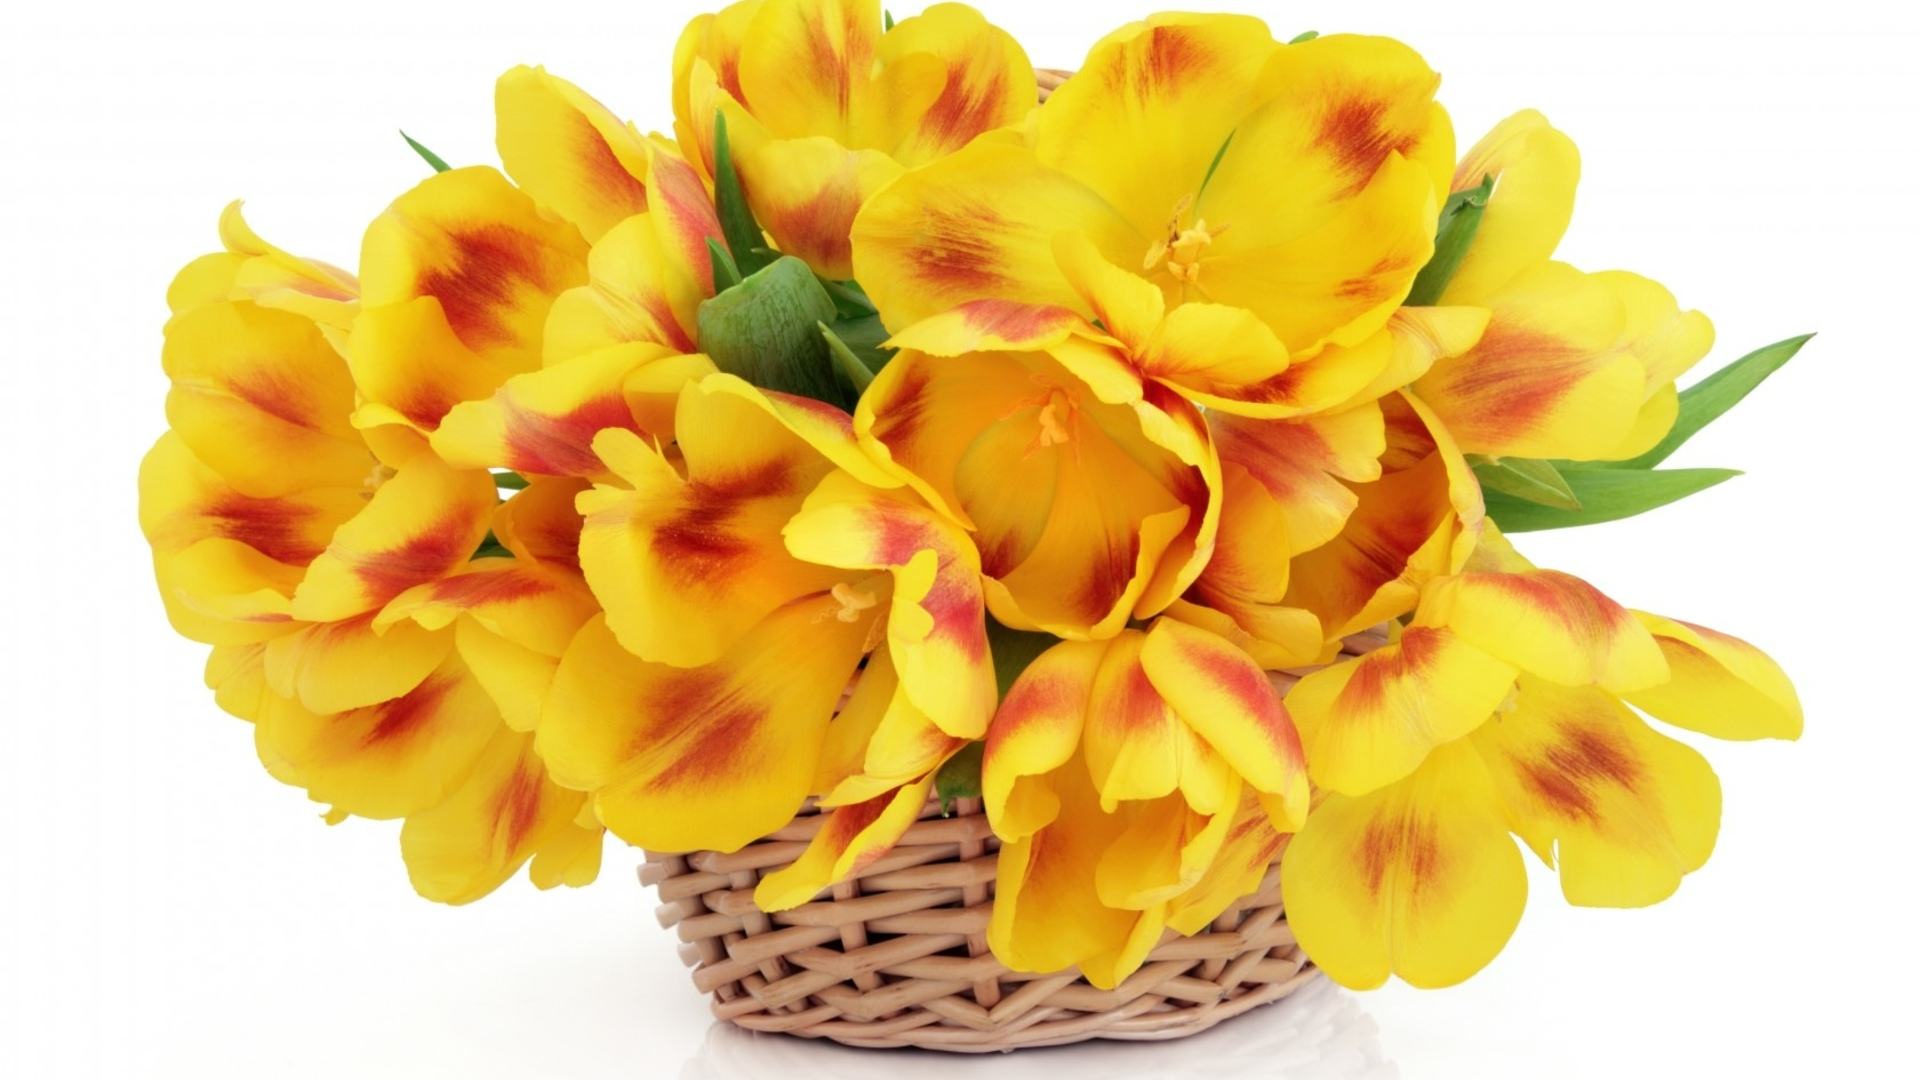 Basket With Flowers download image